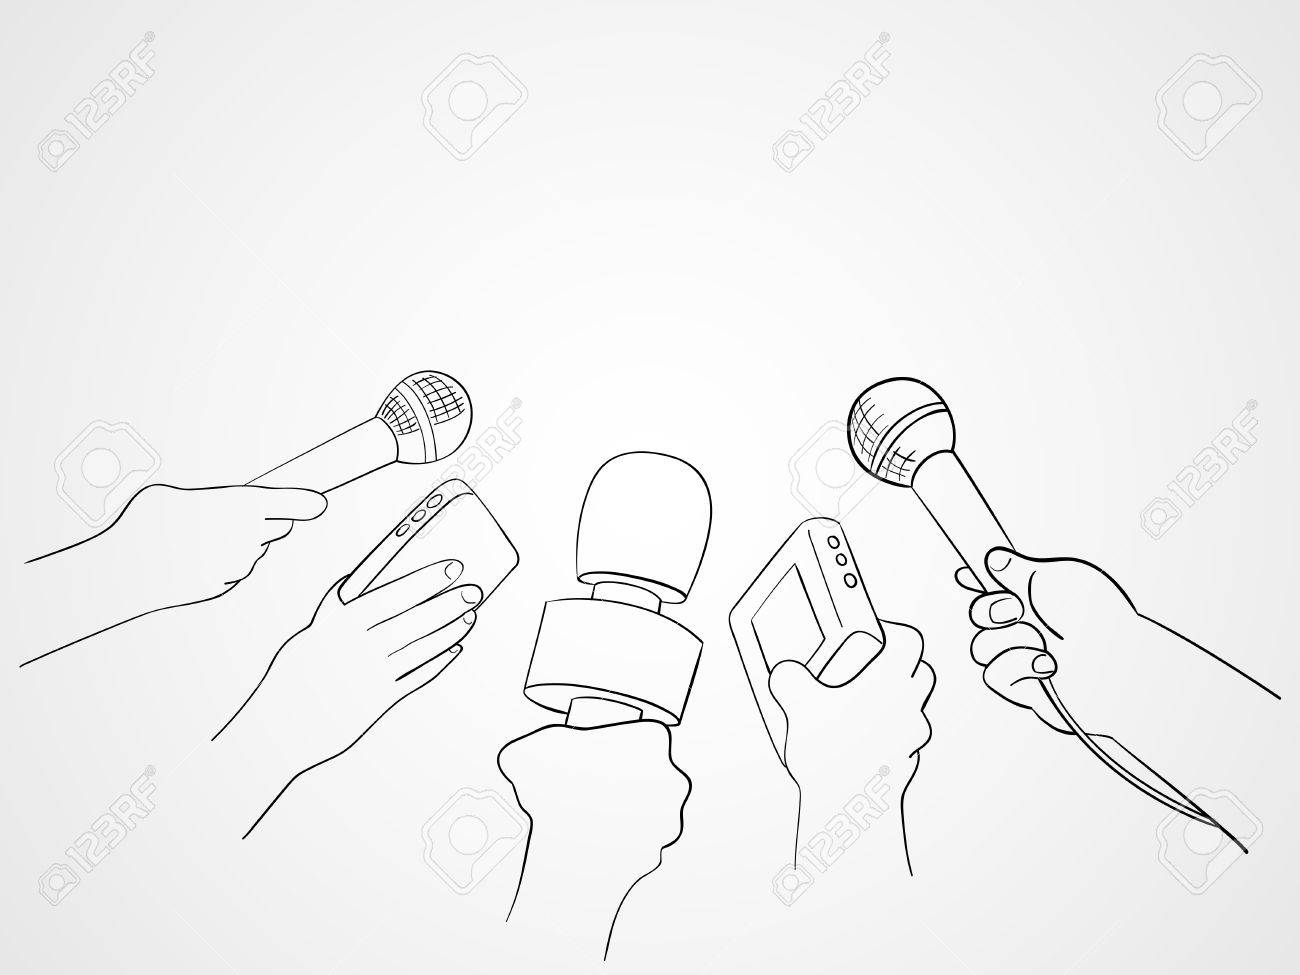 1300x975 Line Art Illustration Of Hands Holding Microphones And Recorders